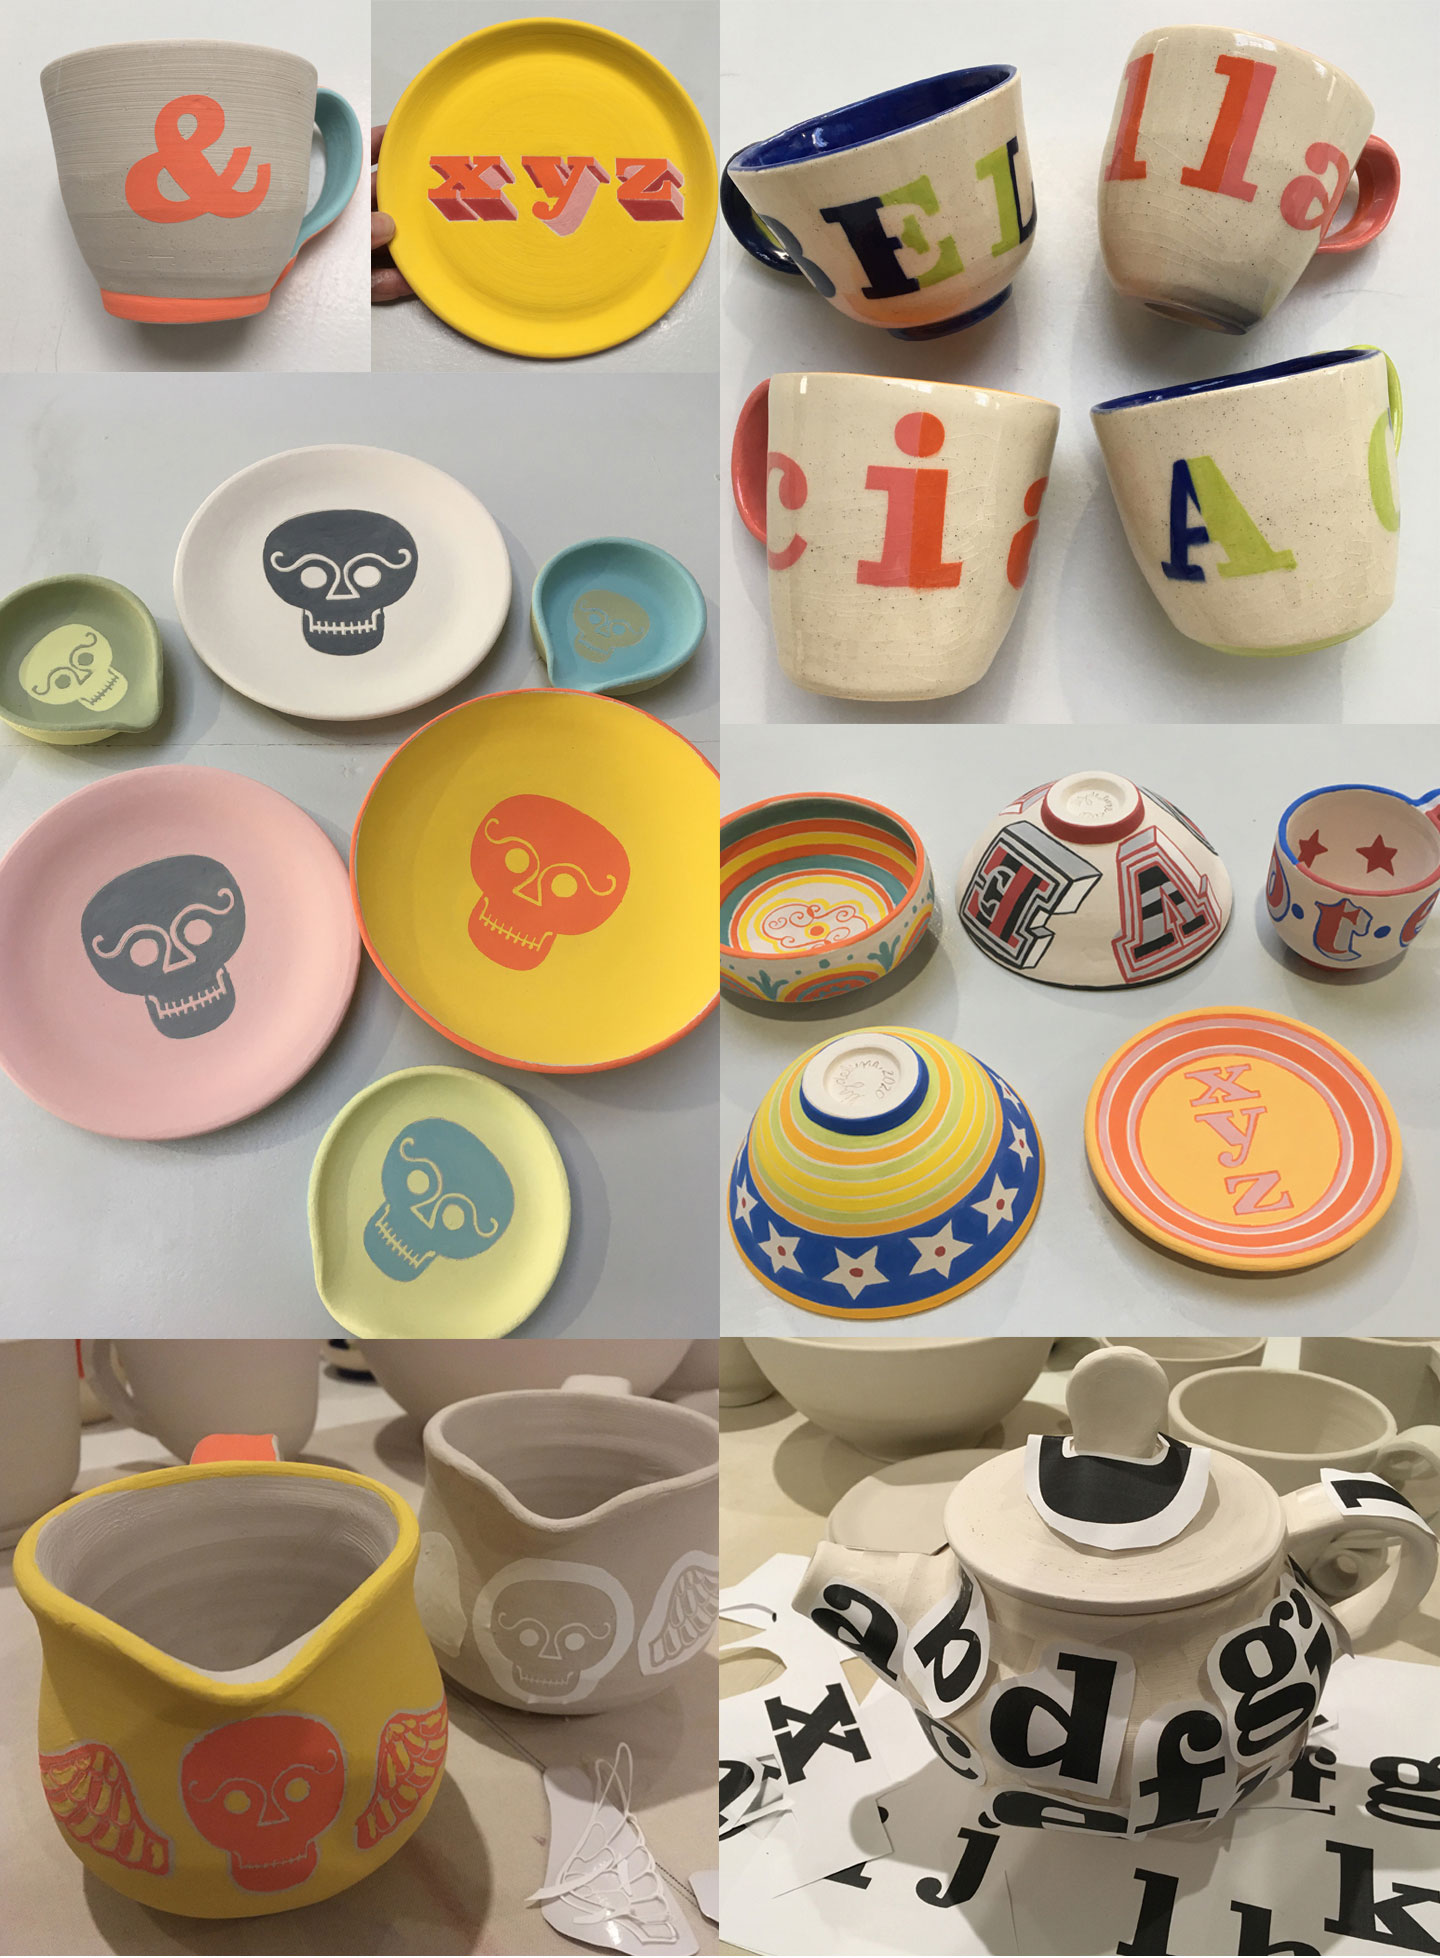 More mugs, bowls, plates, pitchers and a teapot: In process and after final glazing